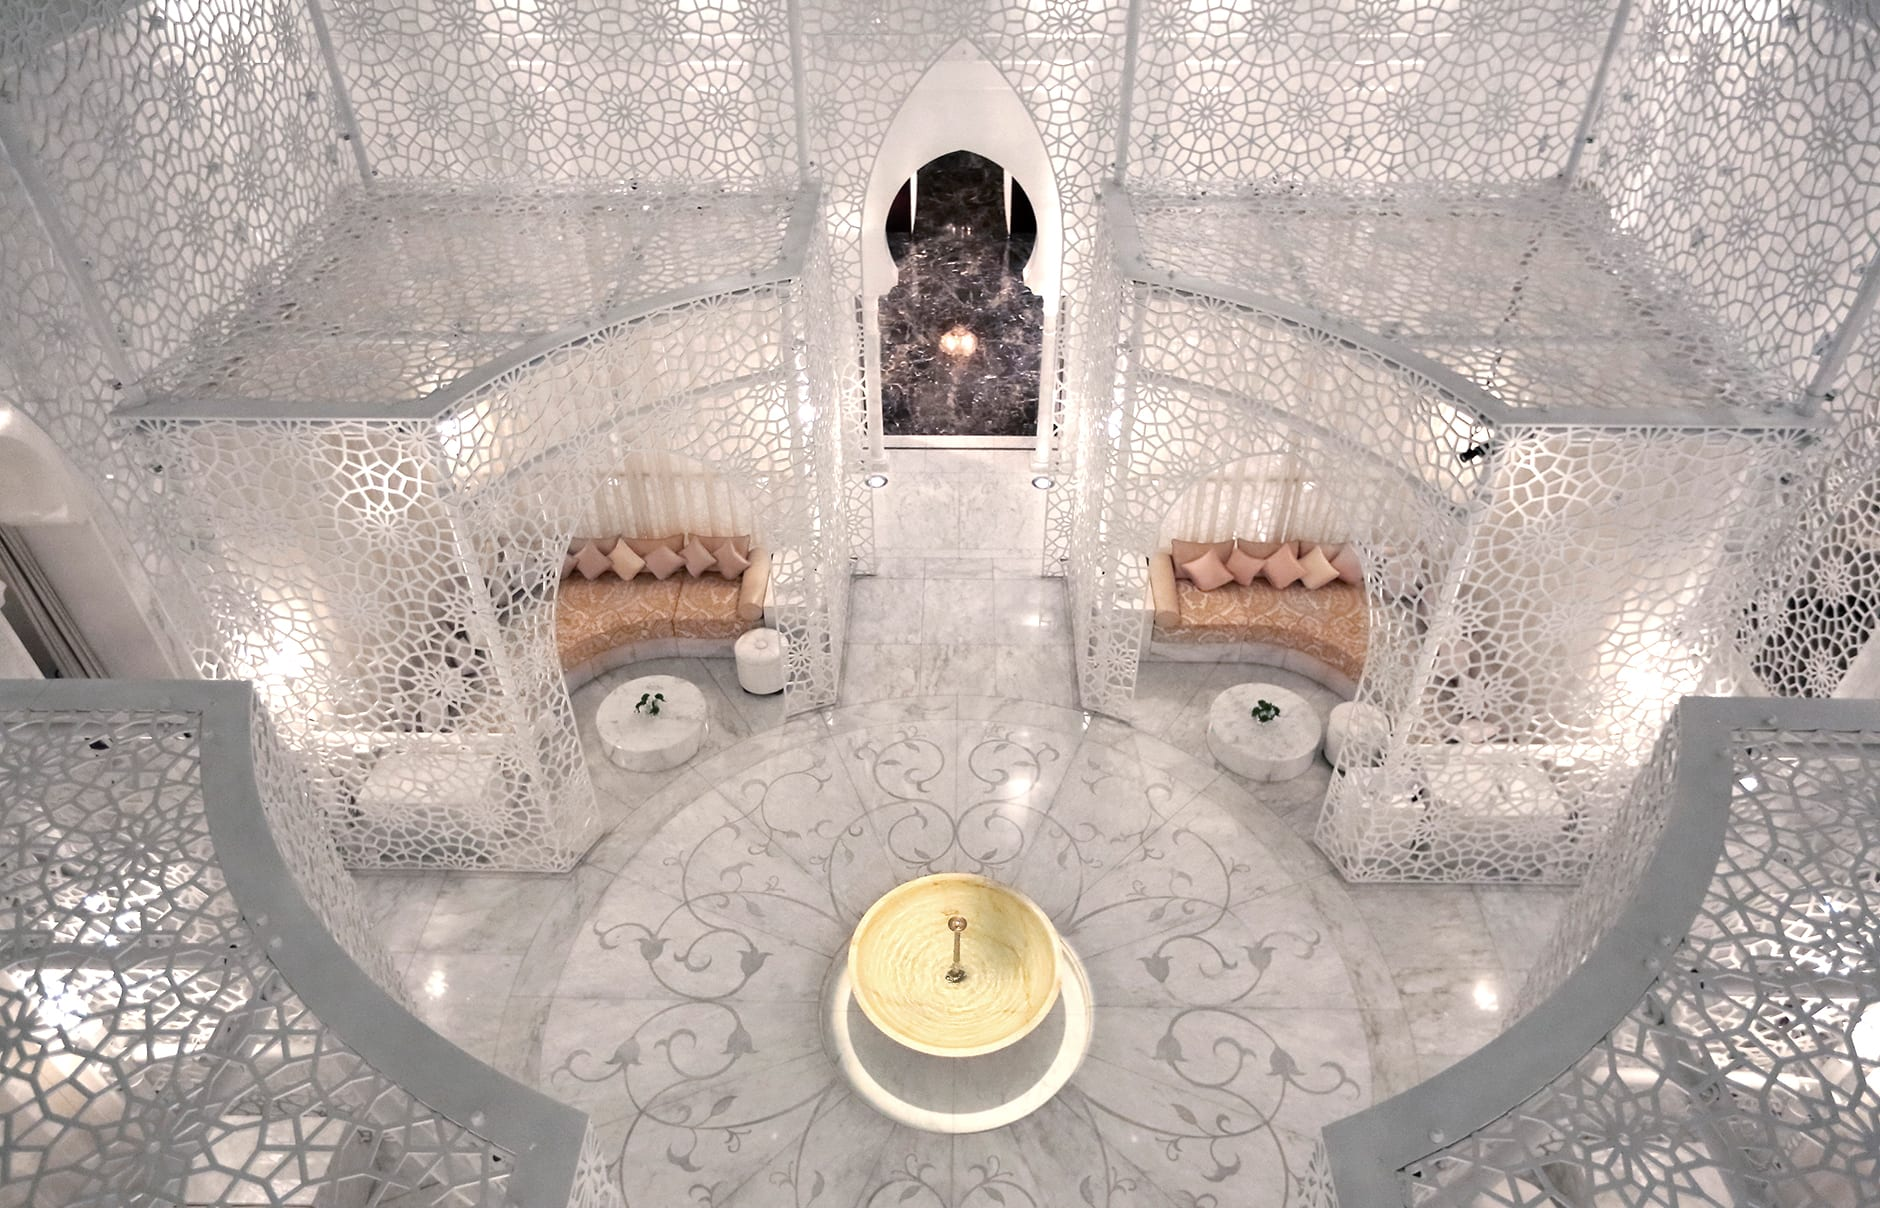 Spa. Royal Mansour, Marrakech, Morocco. © Royal Mansour